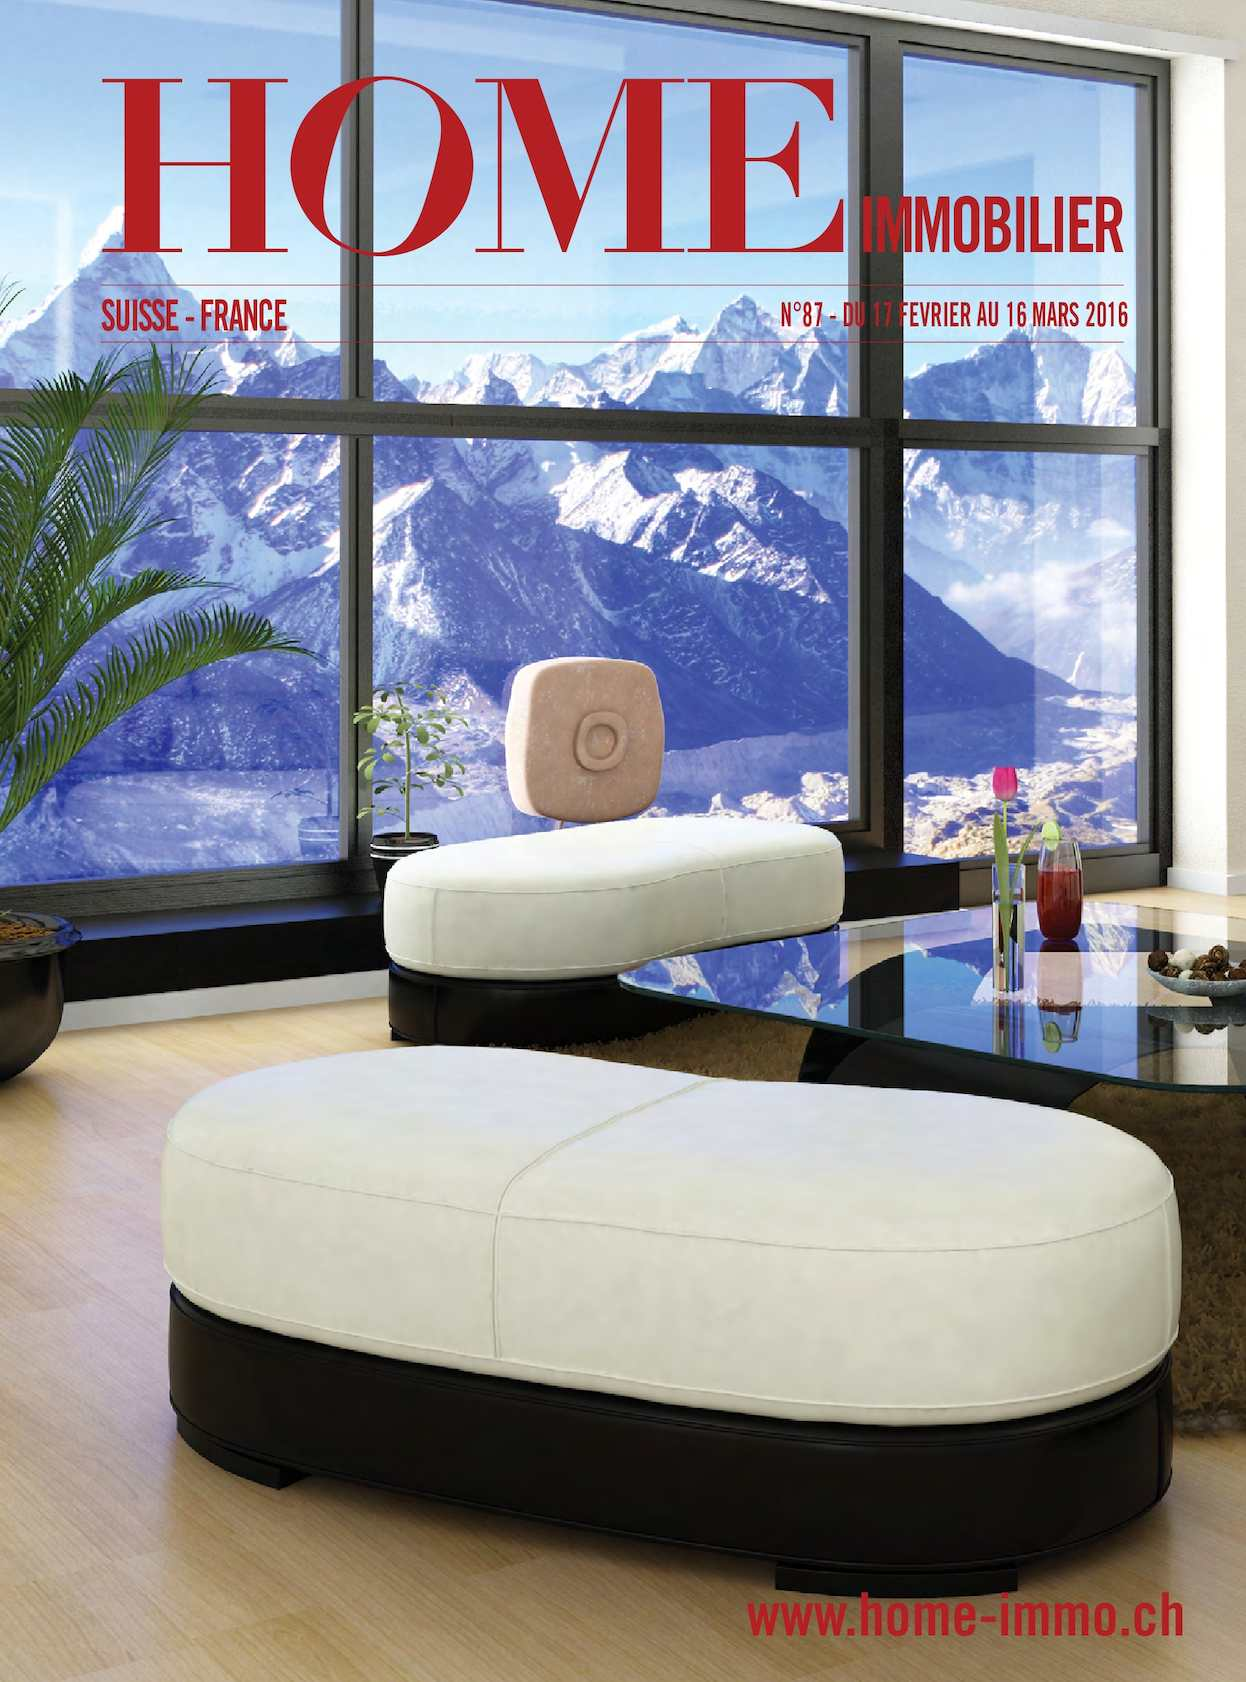 Home Immobilier n°87